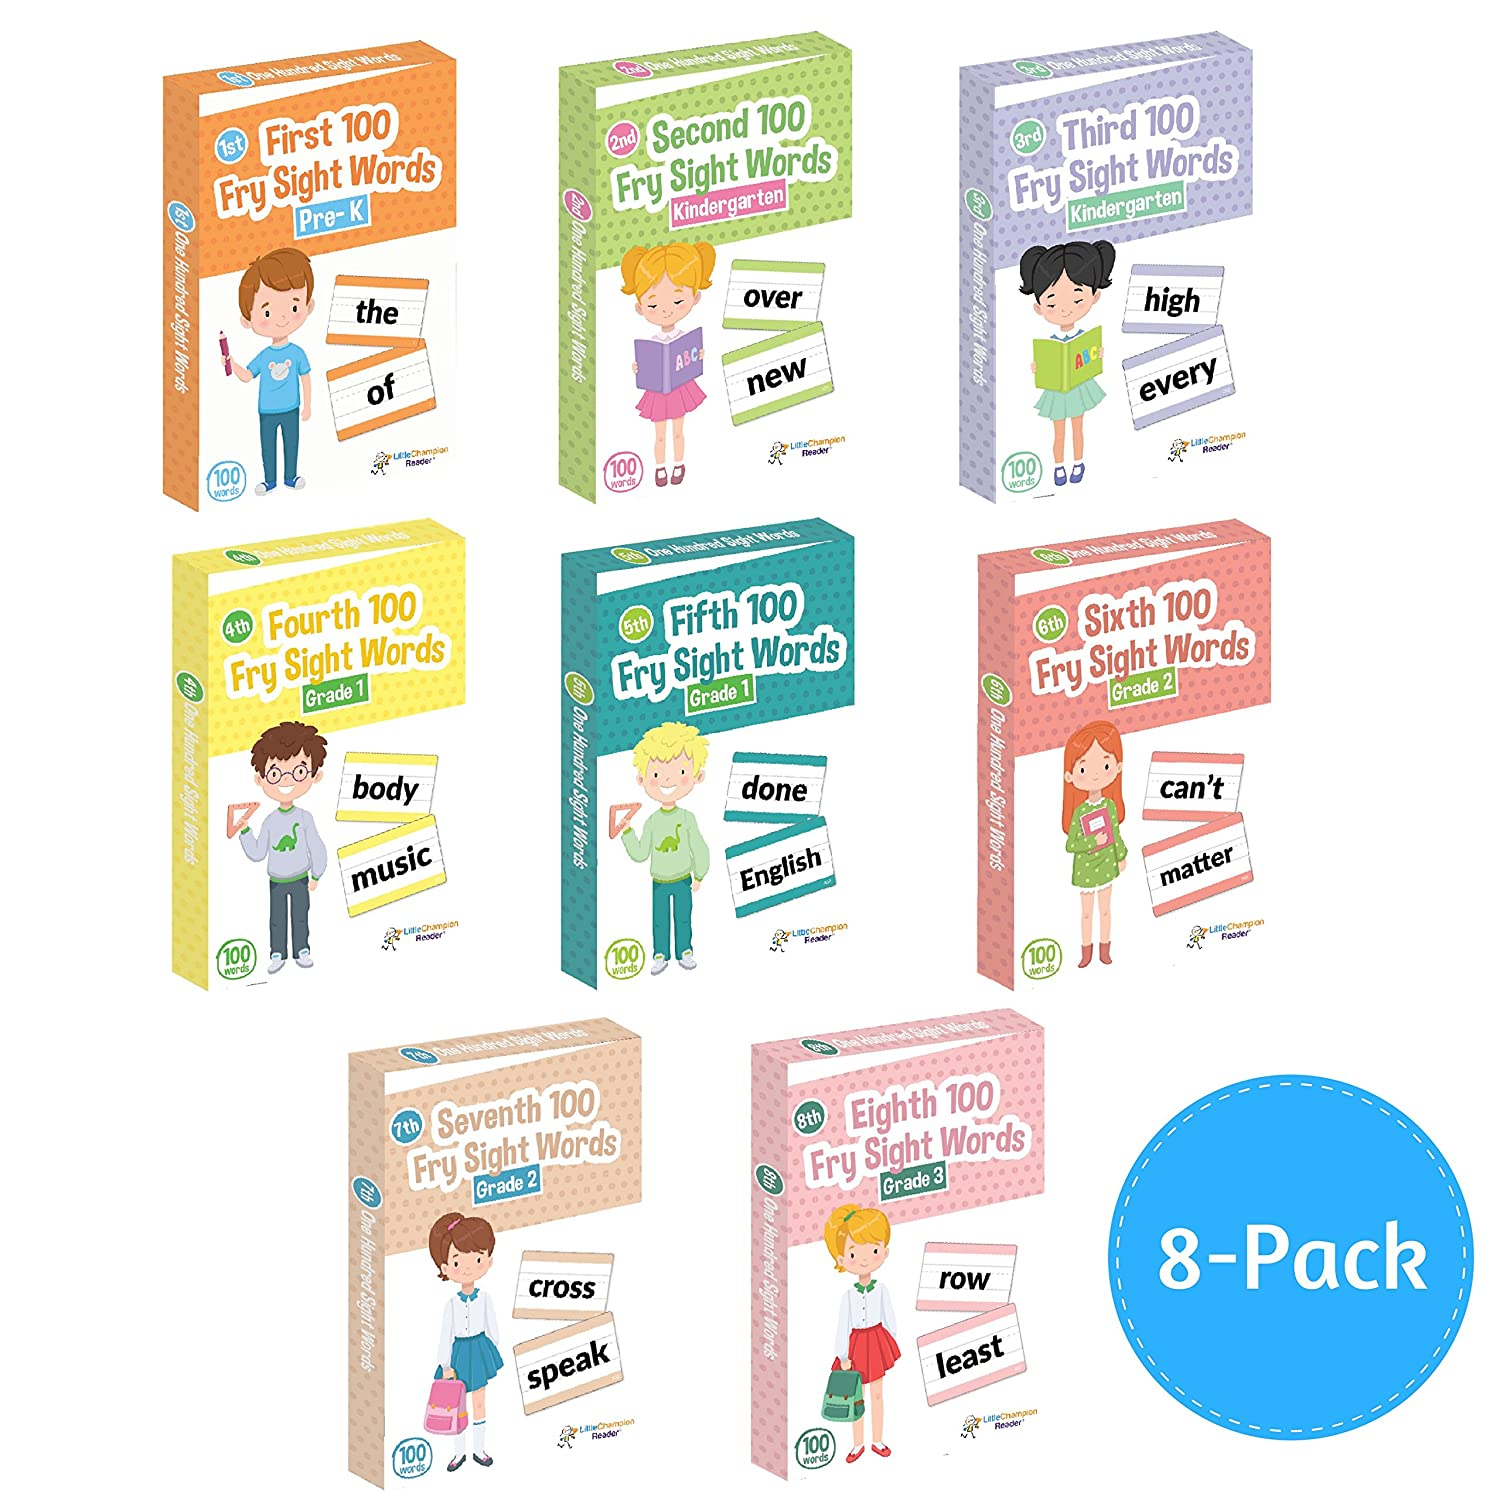 Little Champion Reader 800 Sight Word Flashcards in 8-Pack Bundle Set,  Pre-K to 3rd Grade, Teaches 800 Dolch Fry High-Frequency Sight Words